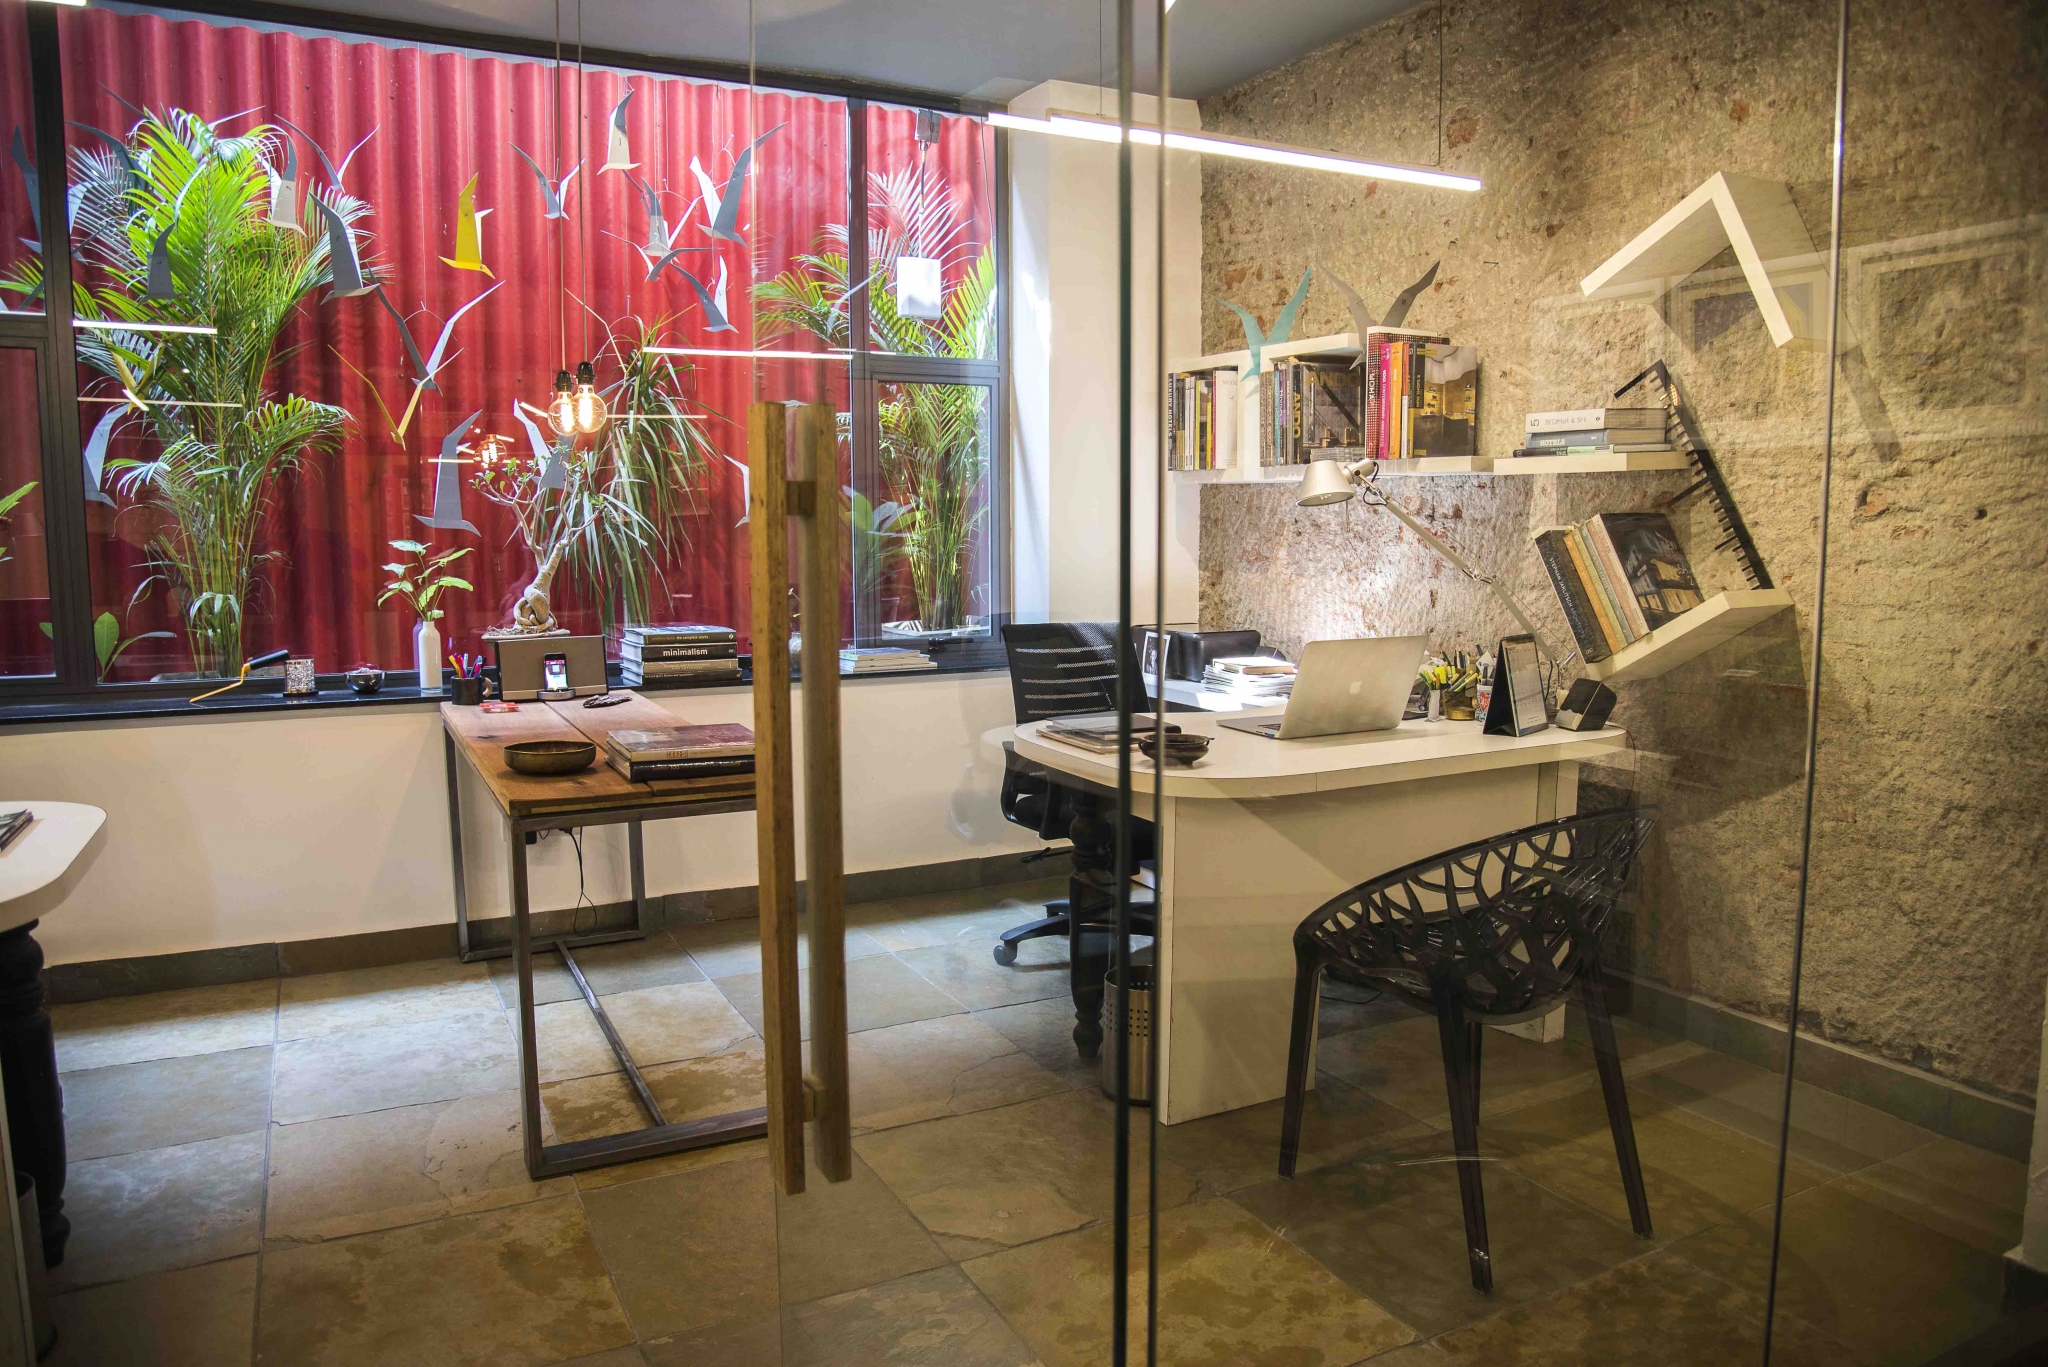 studio office design. Atrium Design Studio Office